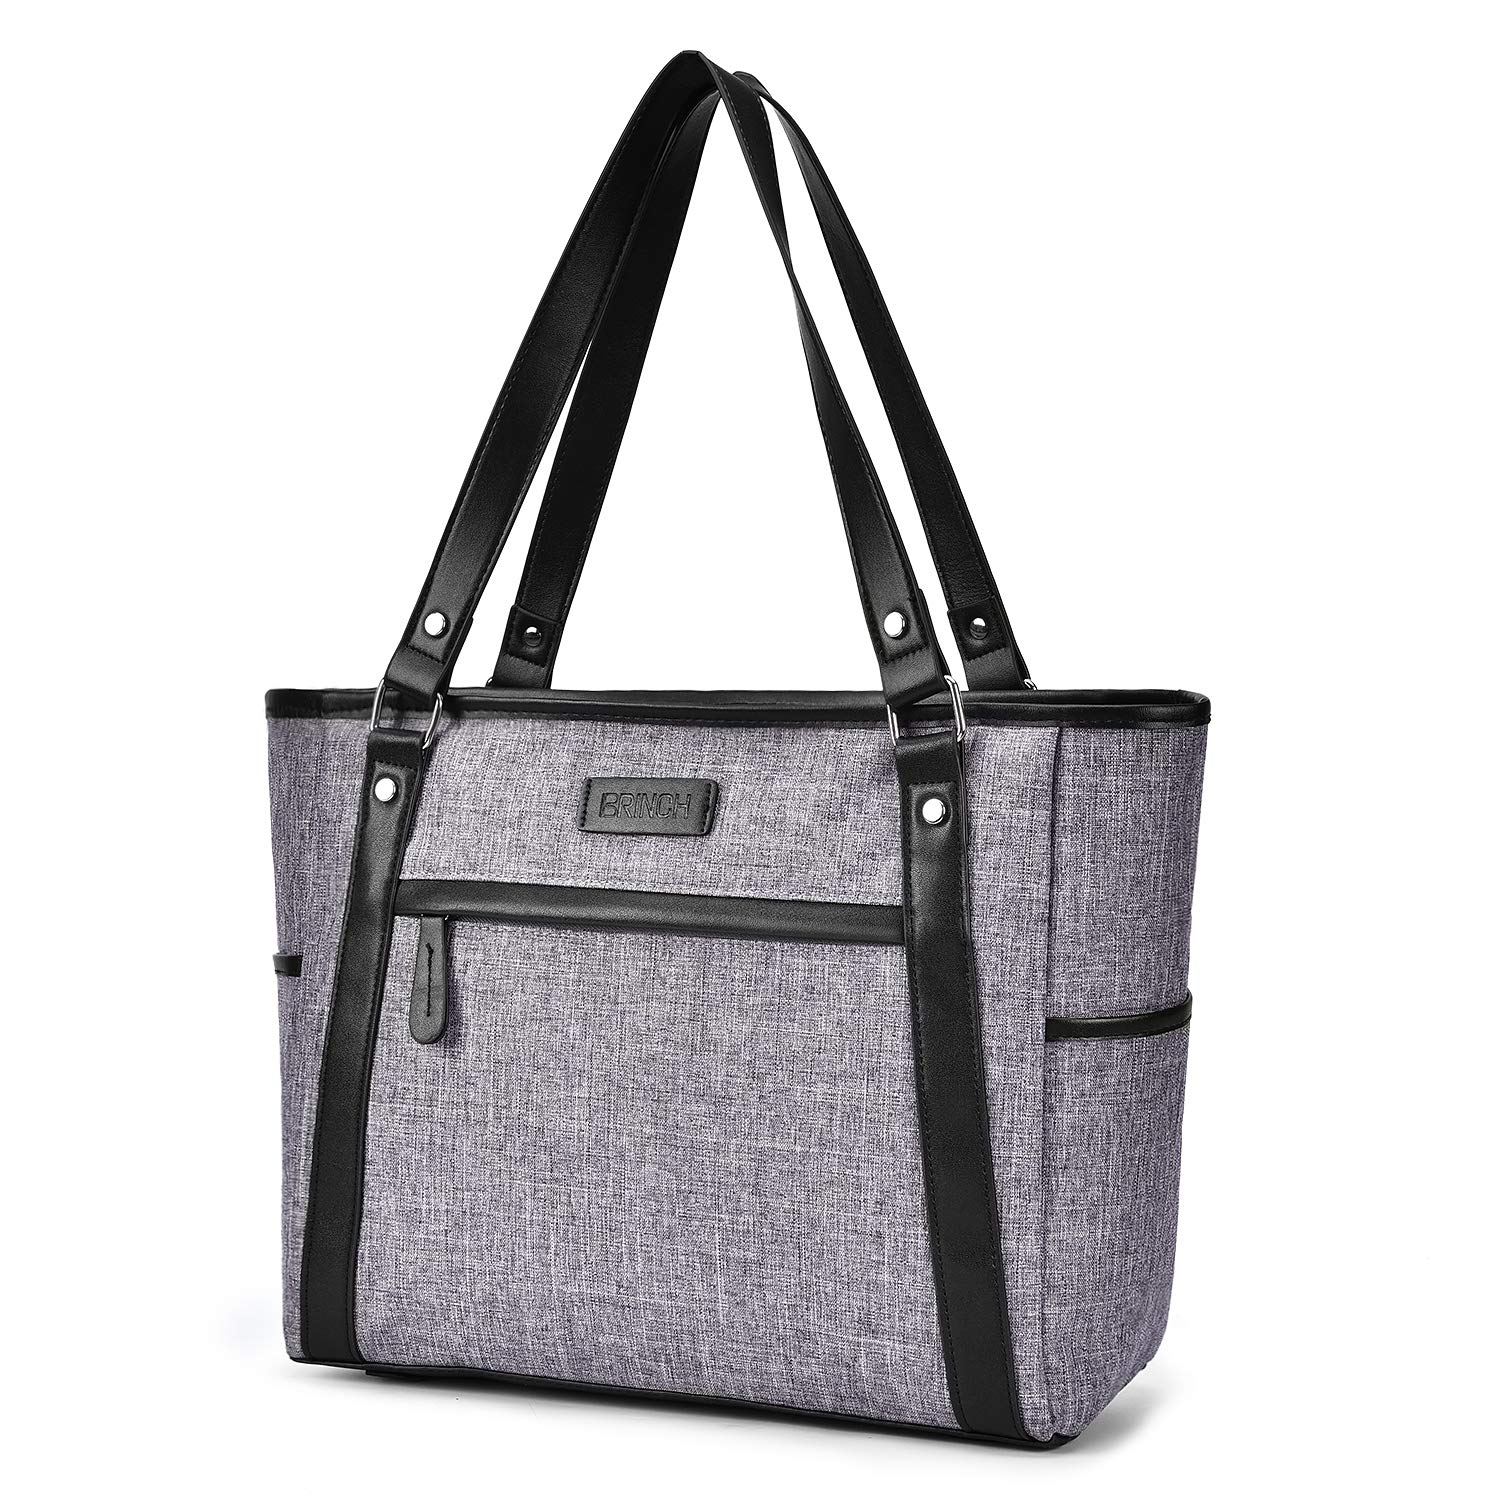 15.6 inch Laptop Tote Bag Lightweight Shoulder Bag for Women Large Capacity Business Briefcase Durable Nylon Travel Computer Tote Casual Shopping Handbag Multi-Function Zipper Work Satchel Bag,Gray Suppets